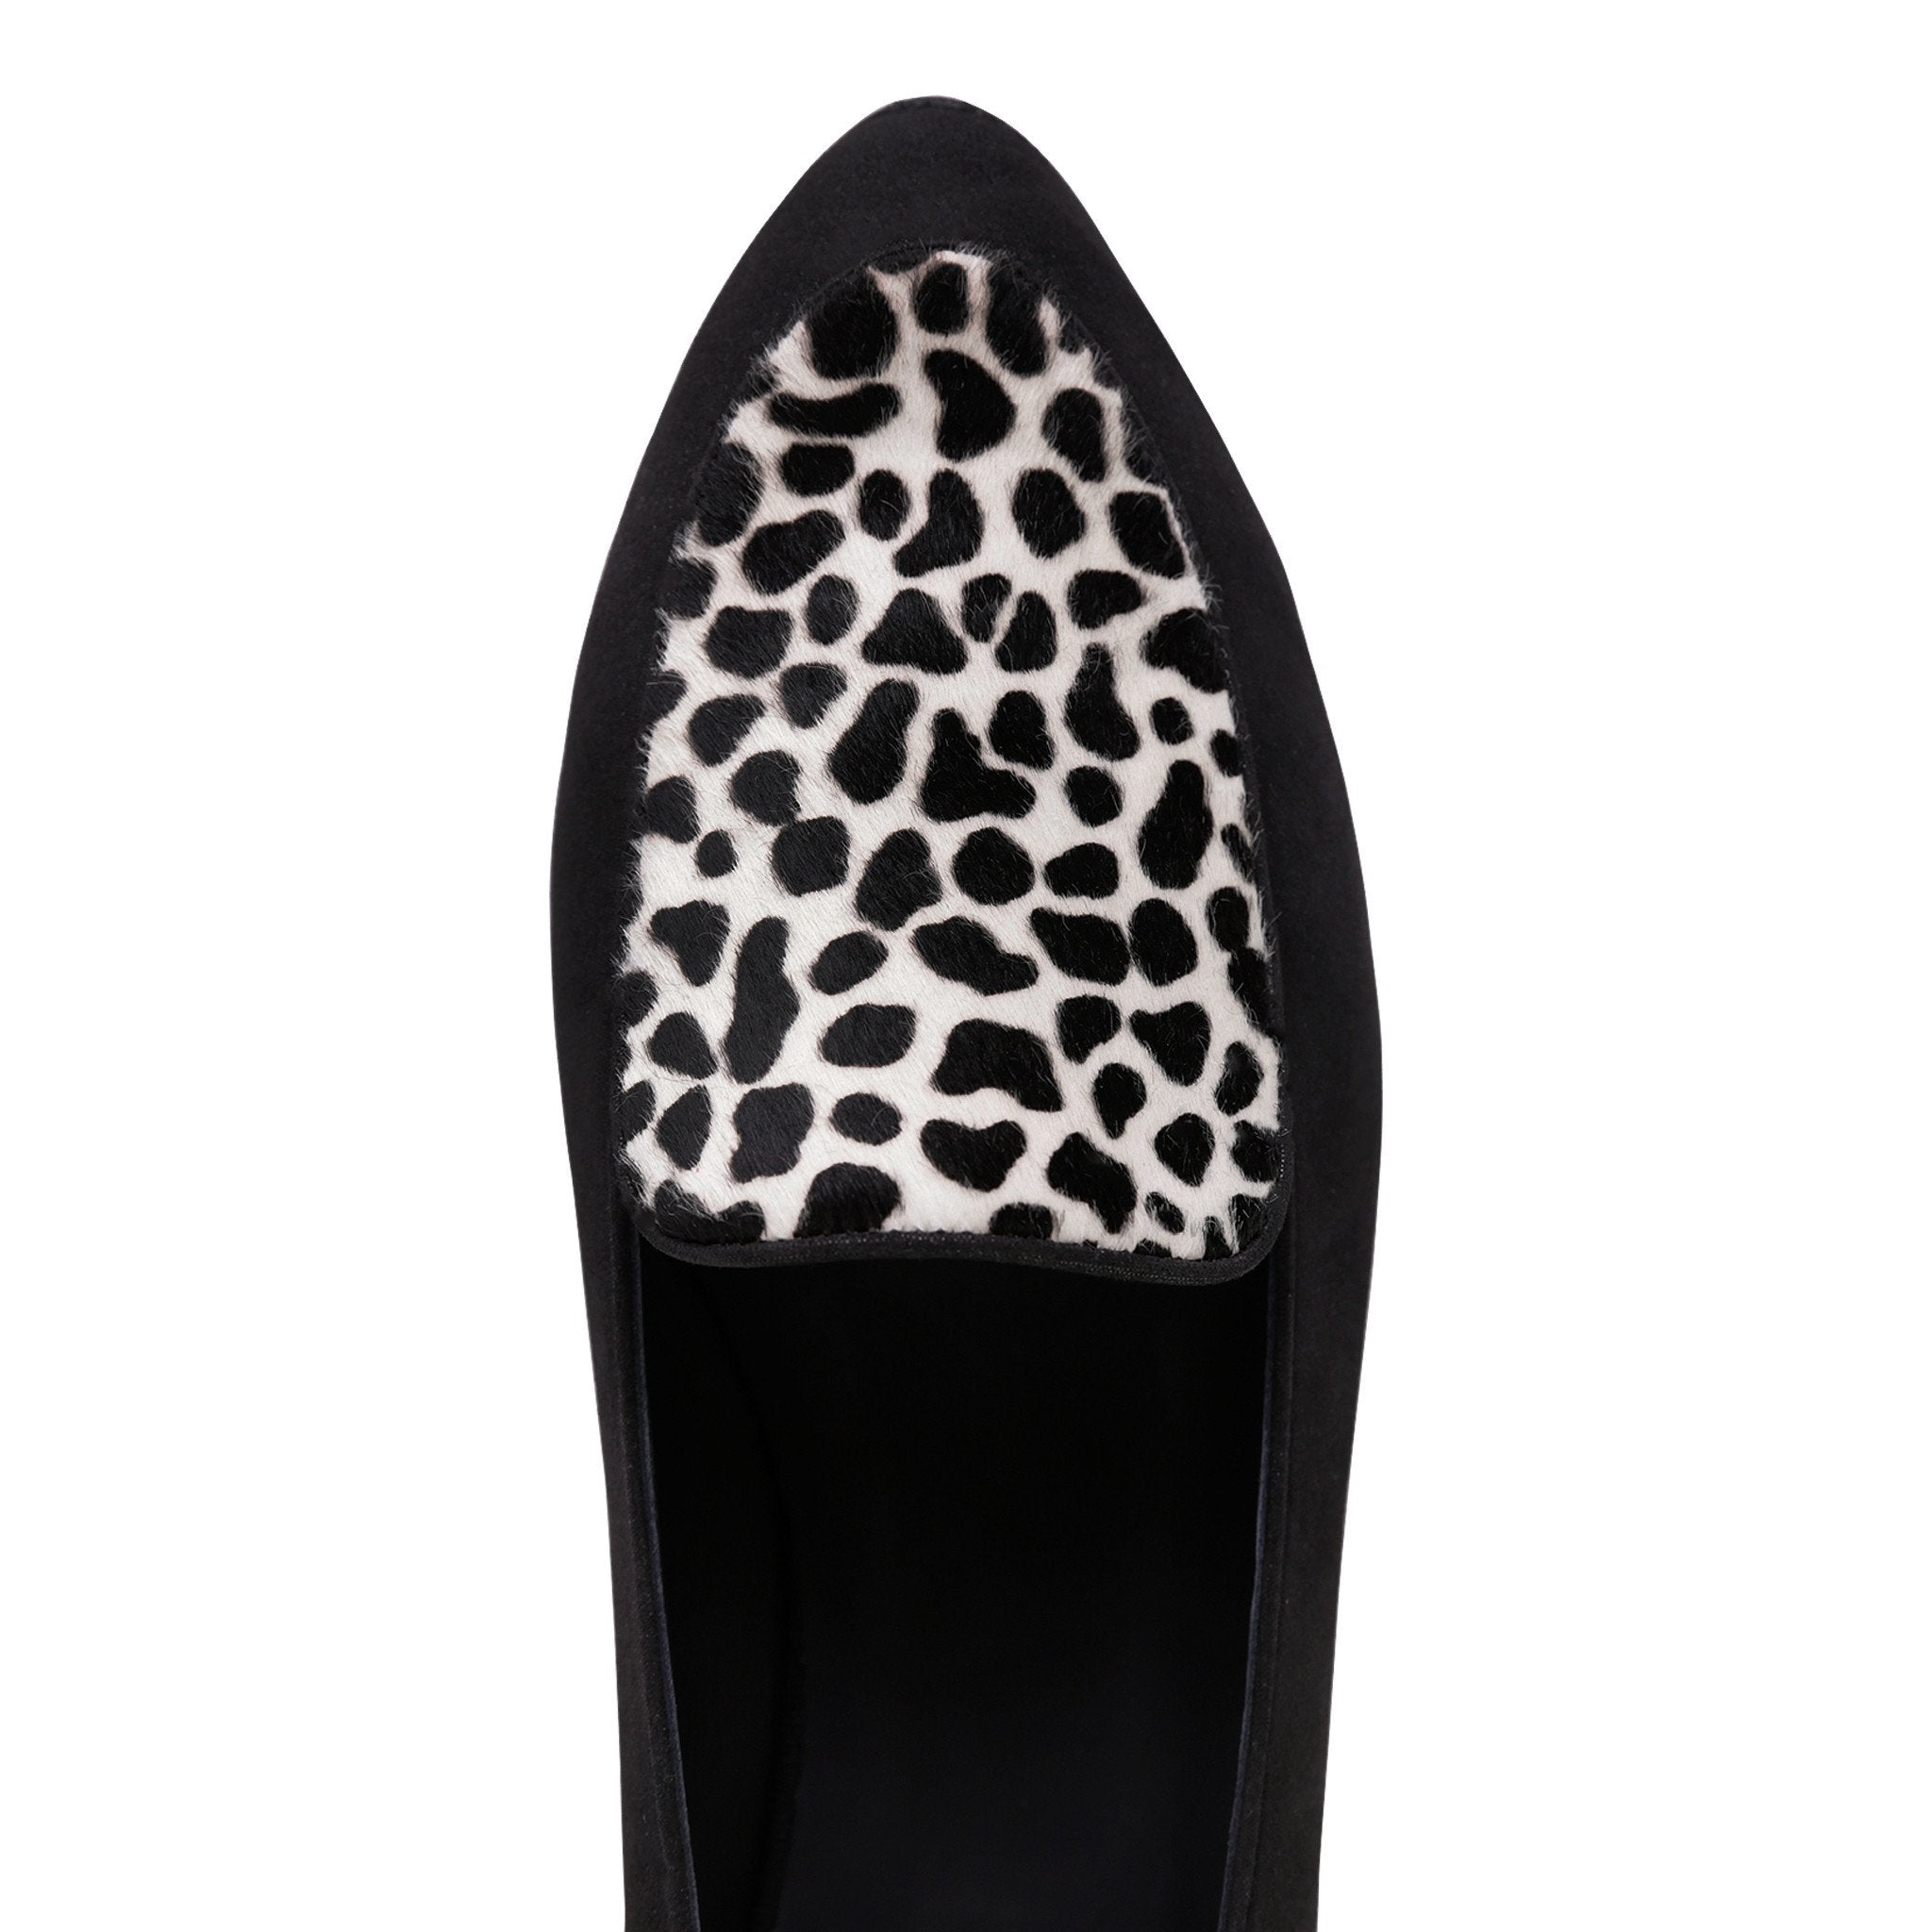 REGGIO - Hydra Nero + Calf Hair Dalmatian, VIAJIYU - Women's Hand Made Sustainable Luxury Shoes. Made in Italy. Made to Order.